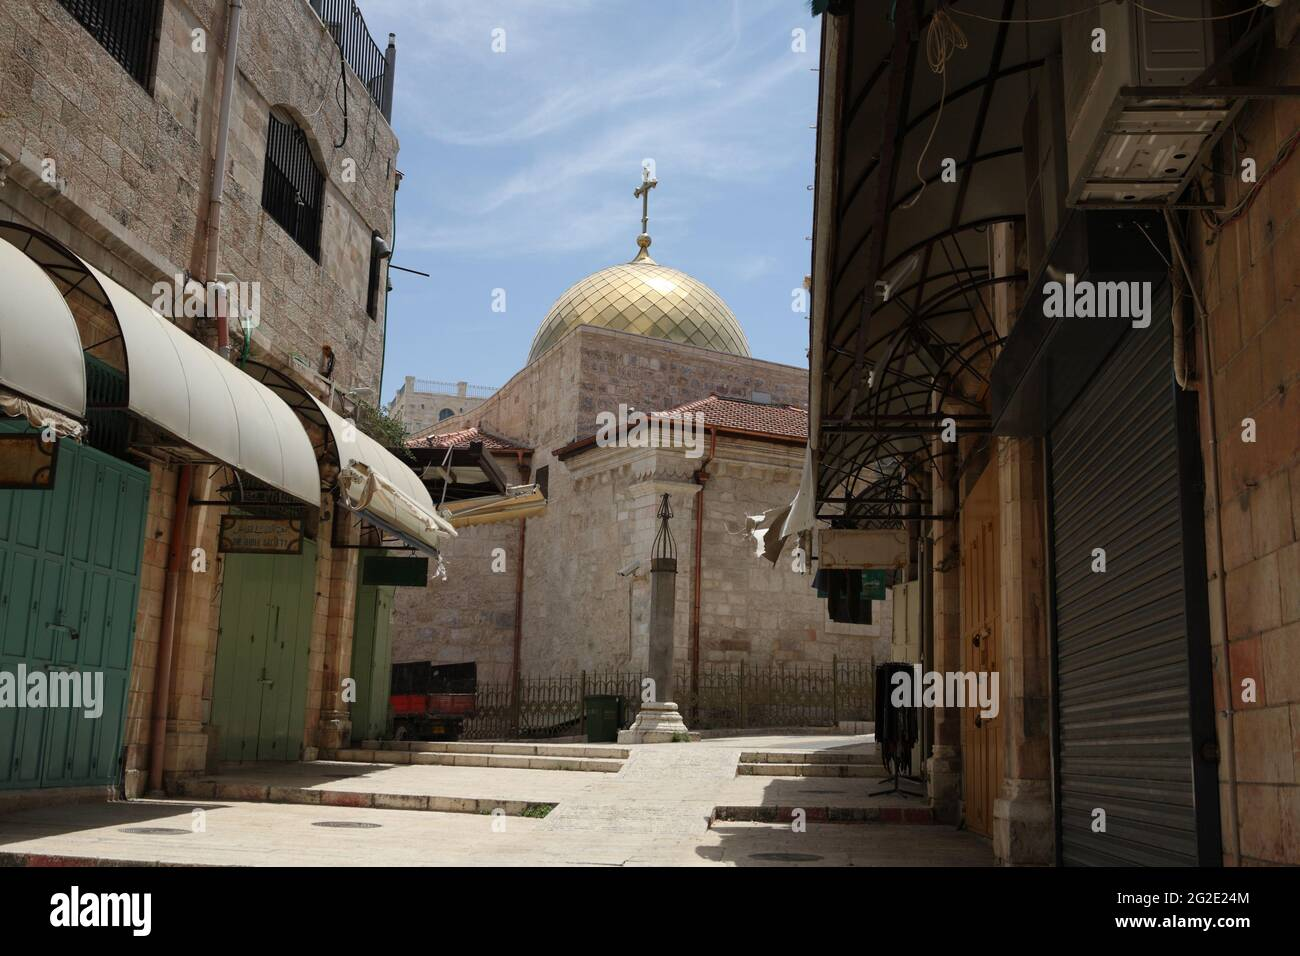 Greek Orthodox Church, building exterior and dome of Saint John the Baptist in the empty Muristan because of Covid 19, the Old City Christian Quarter Stock Photo